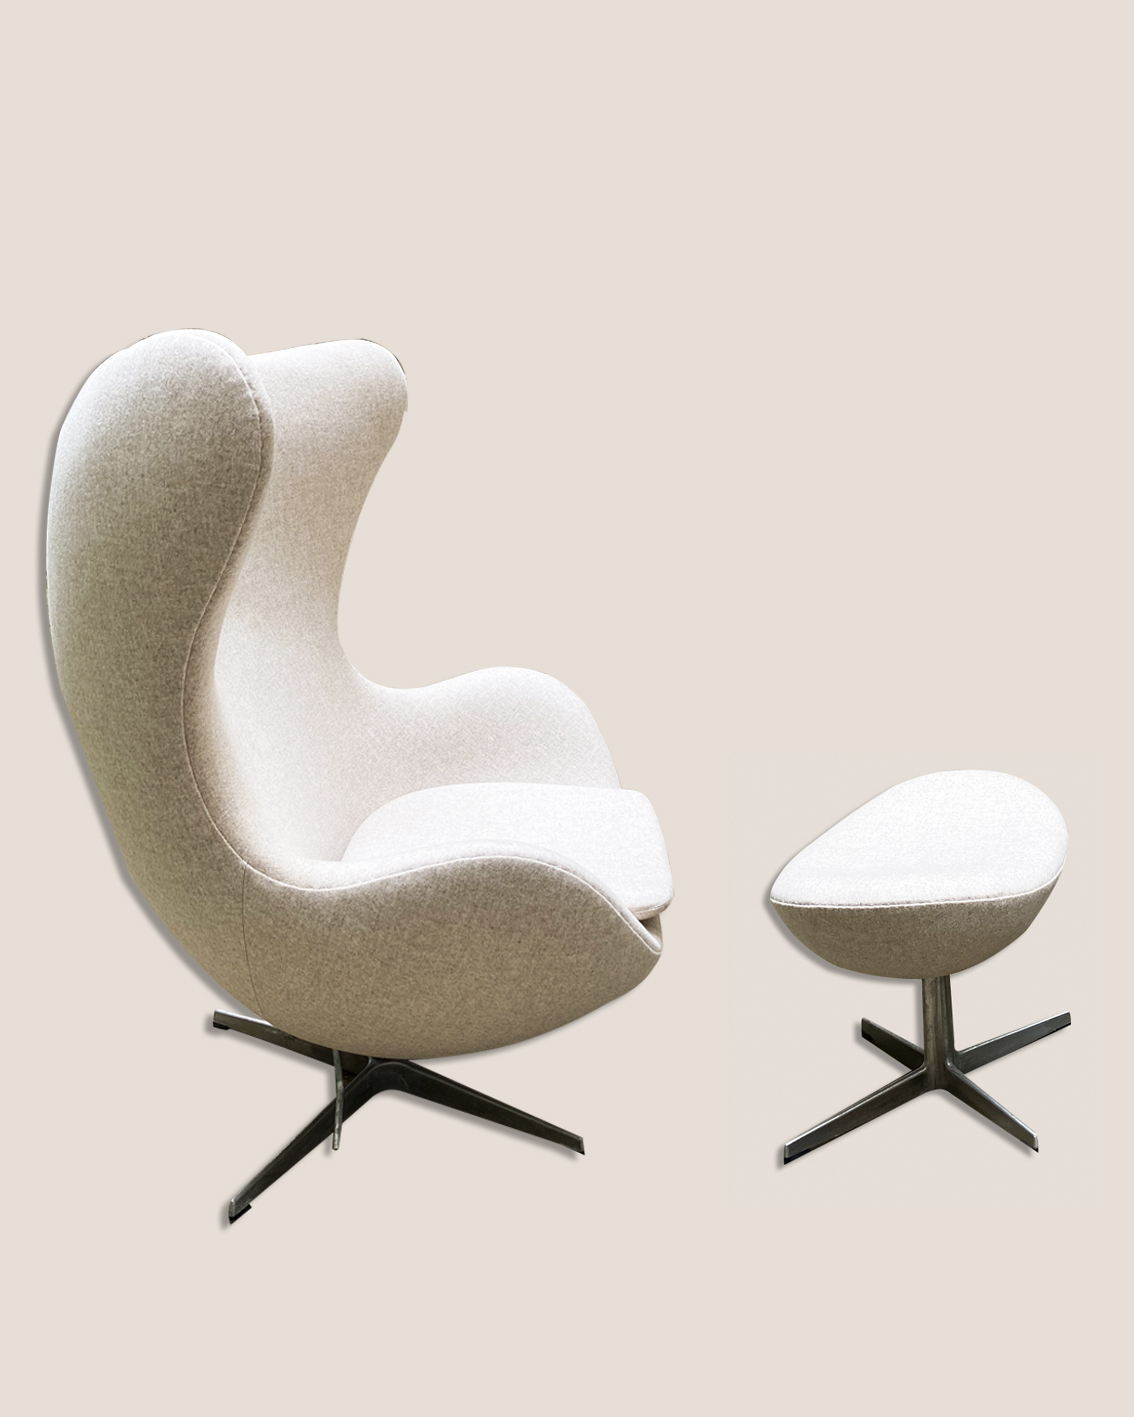 Egg chair 7